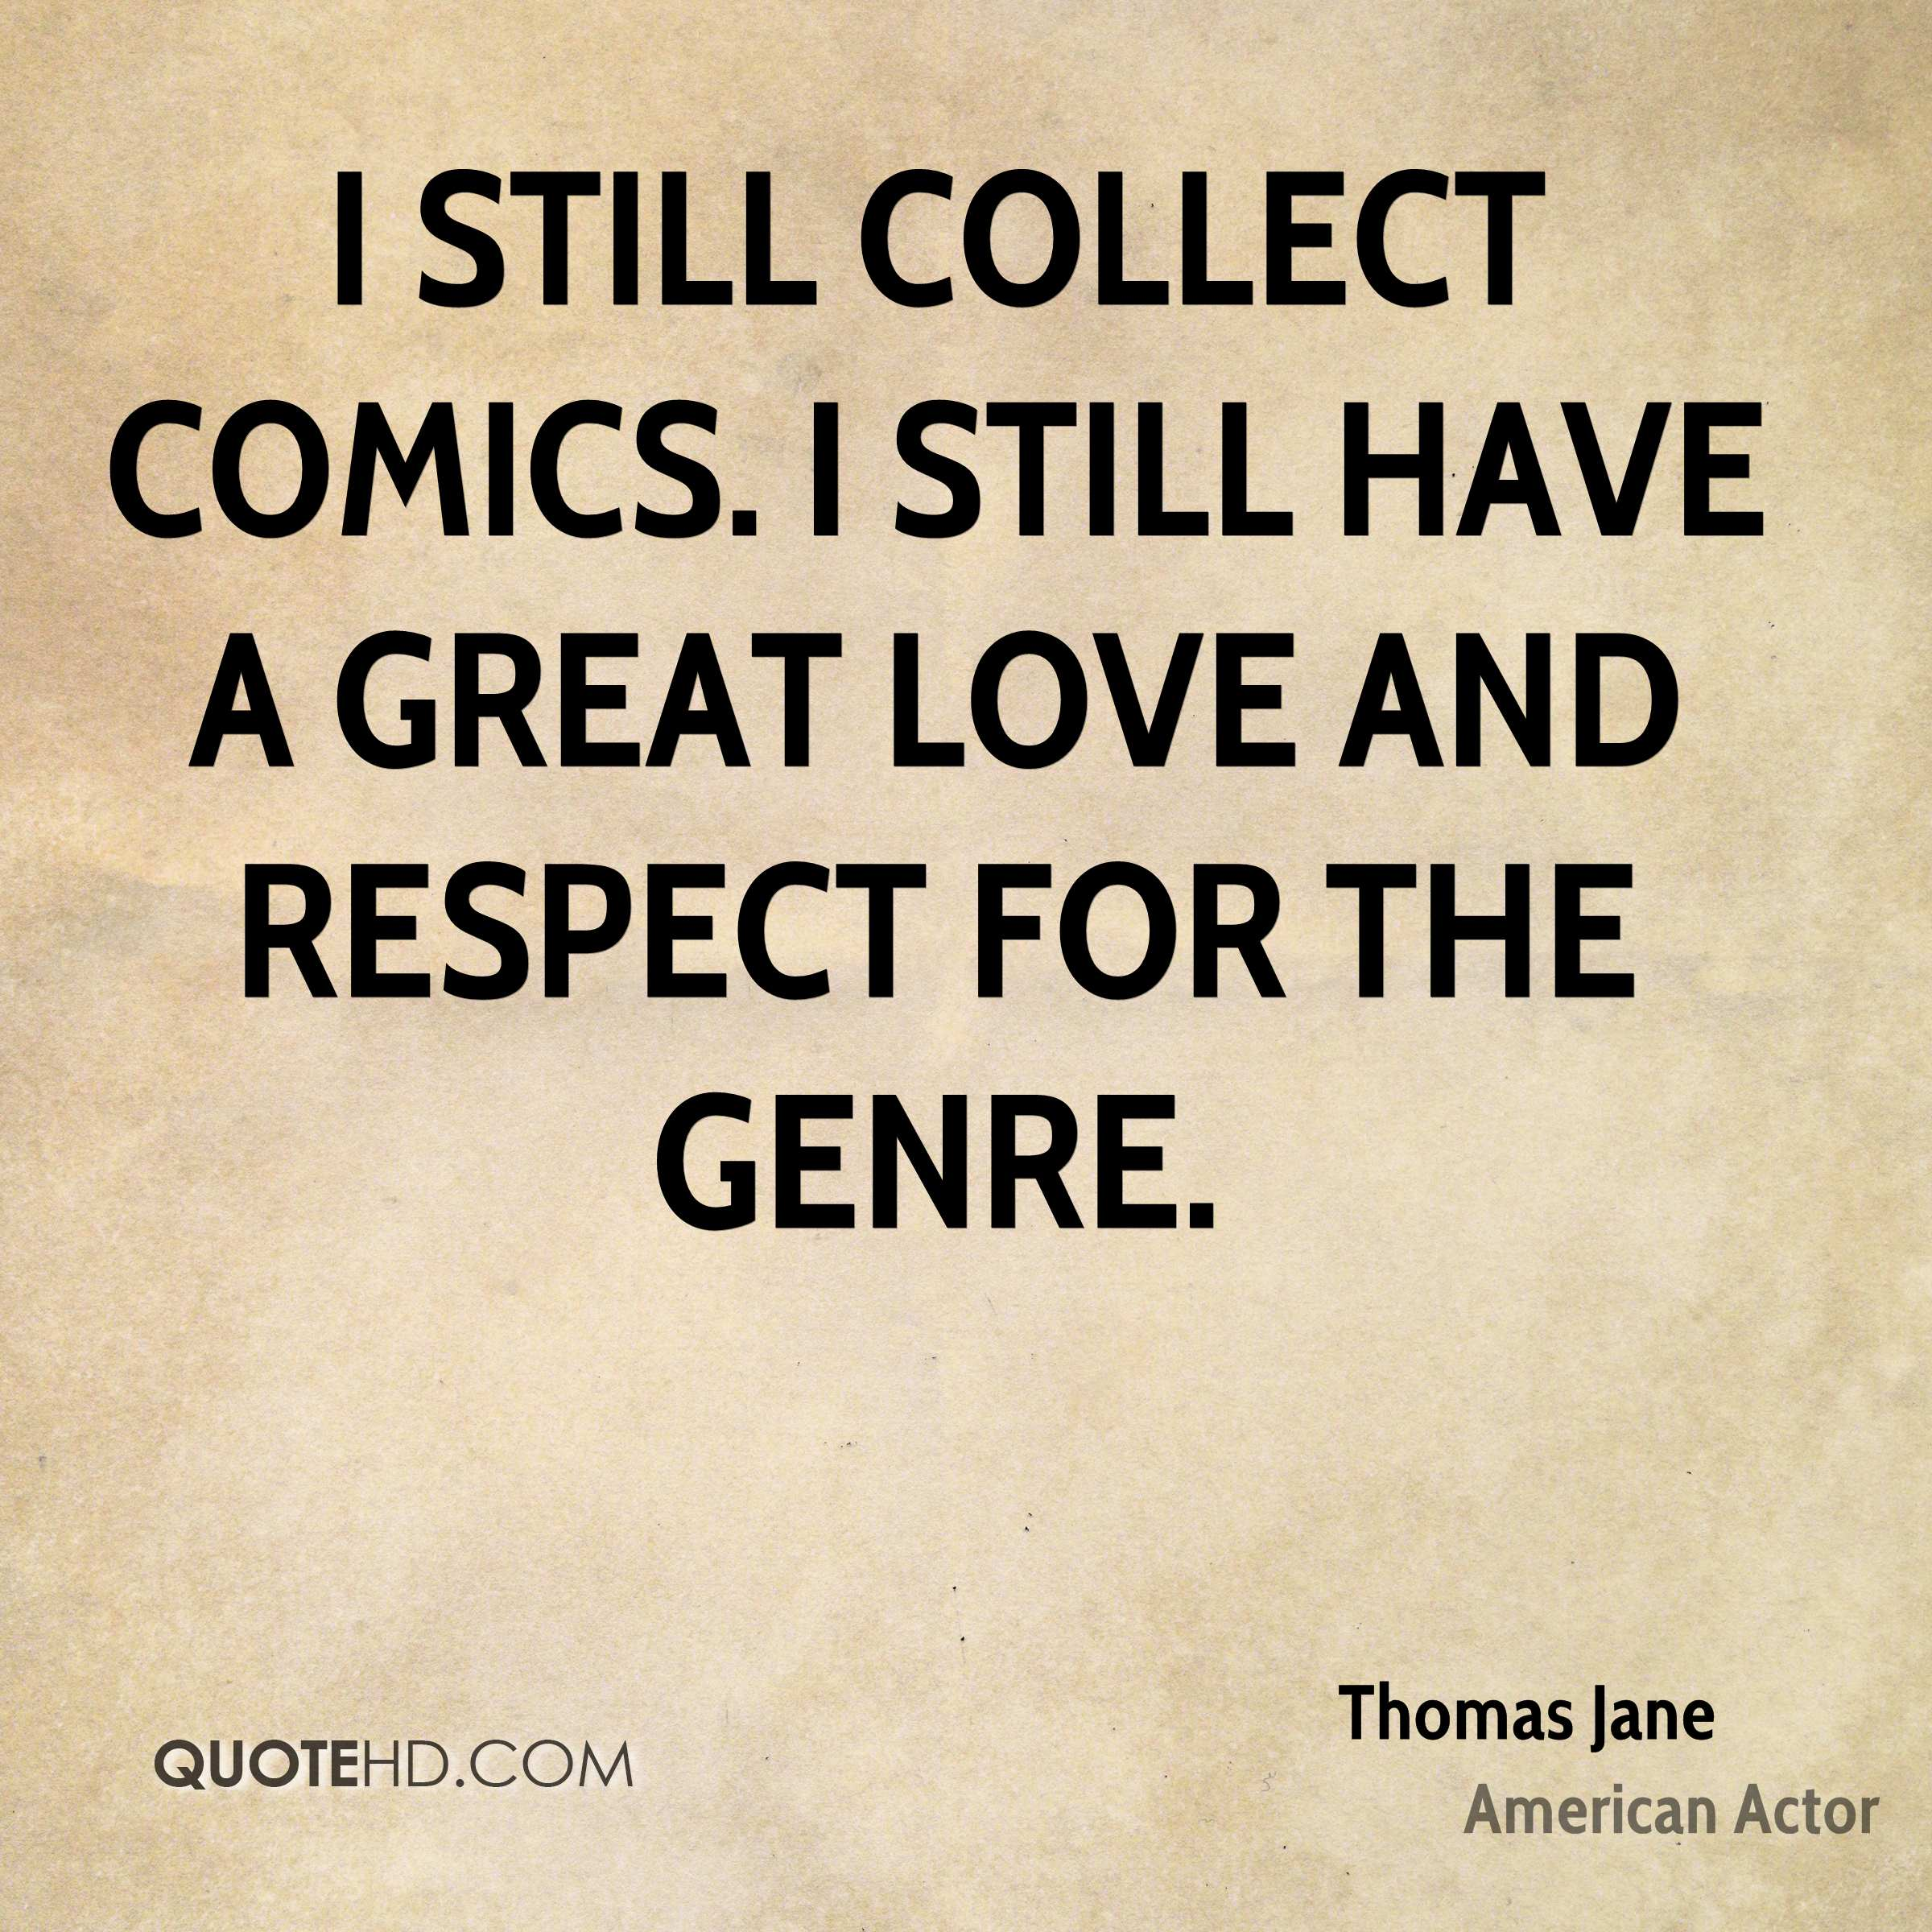 I still collect comics. I still have a great love and respect for the genre.